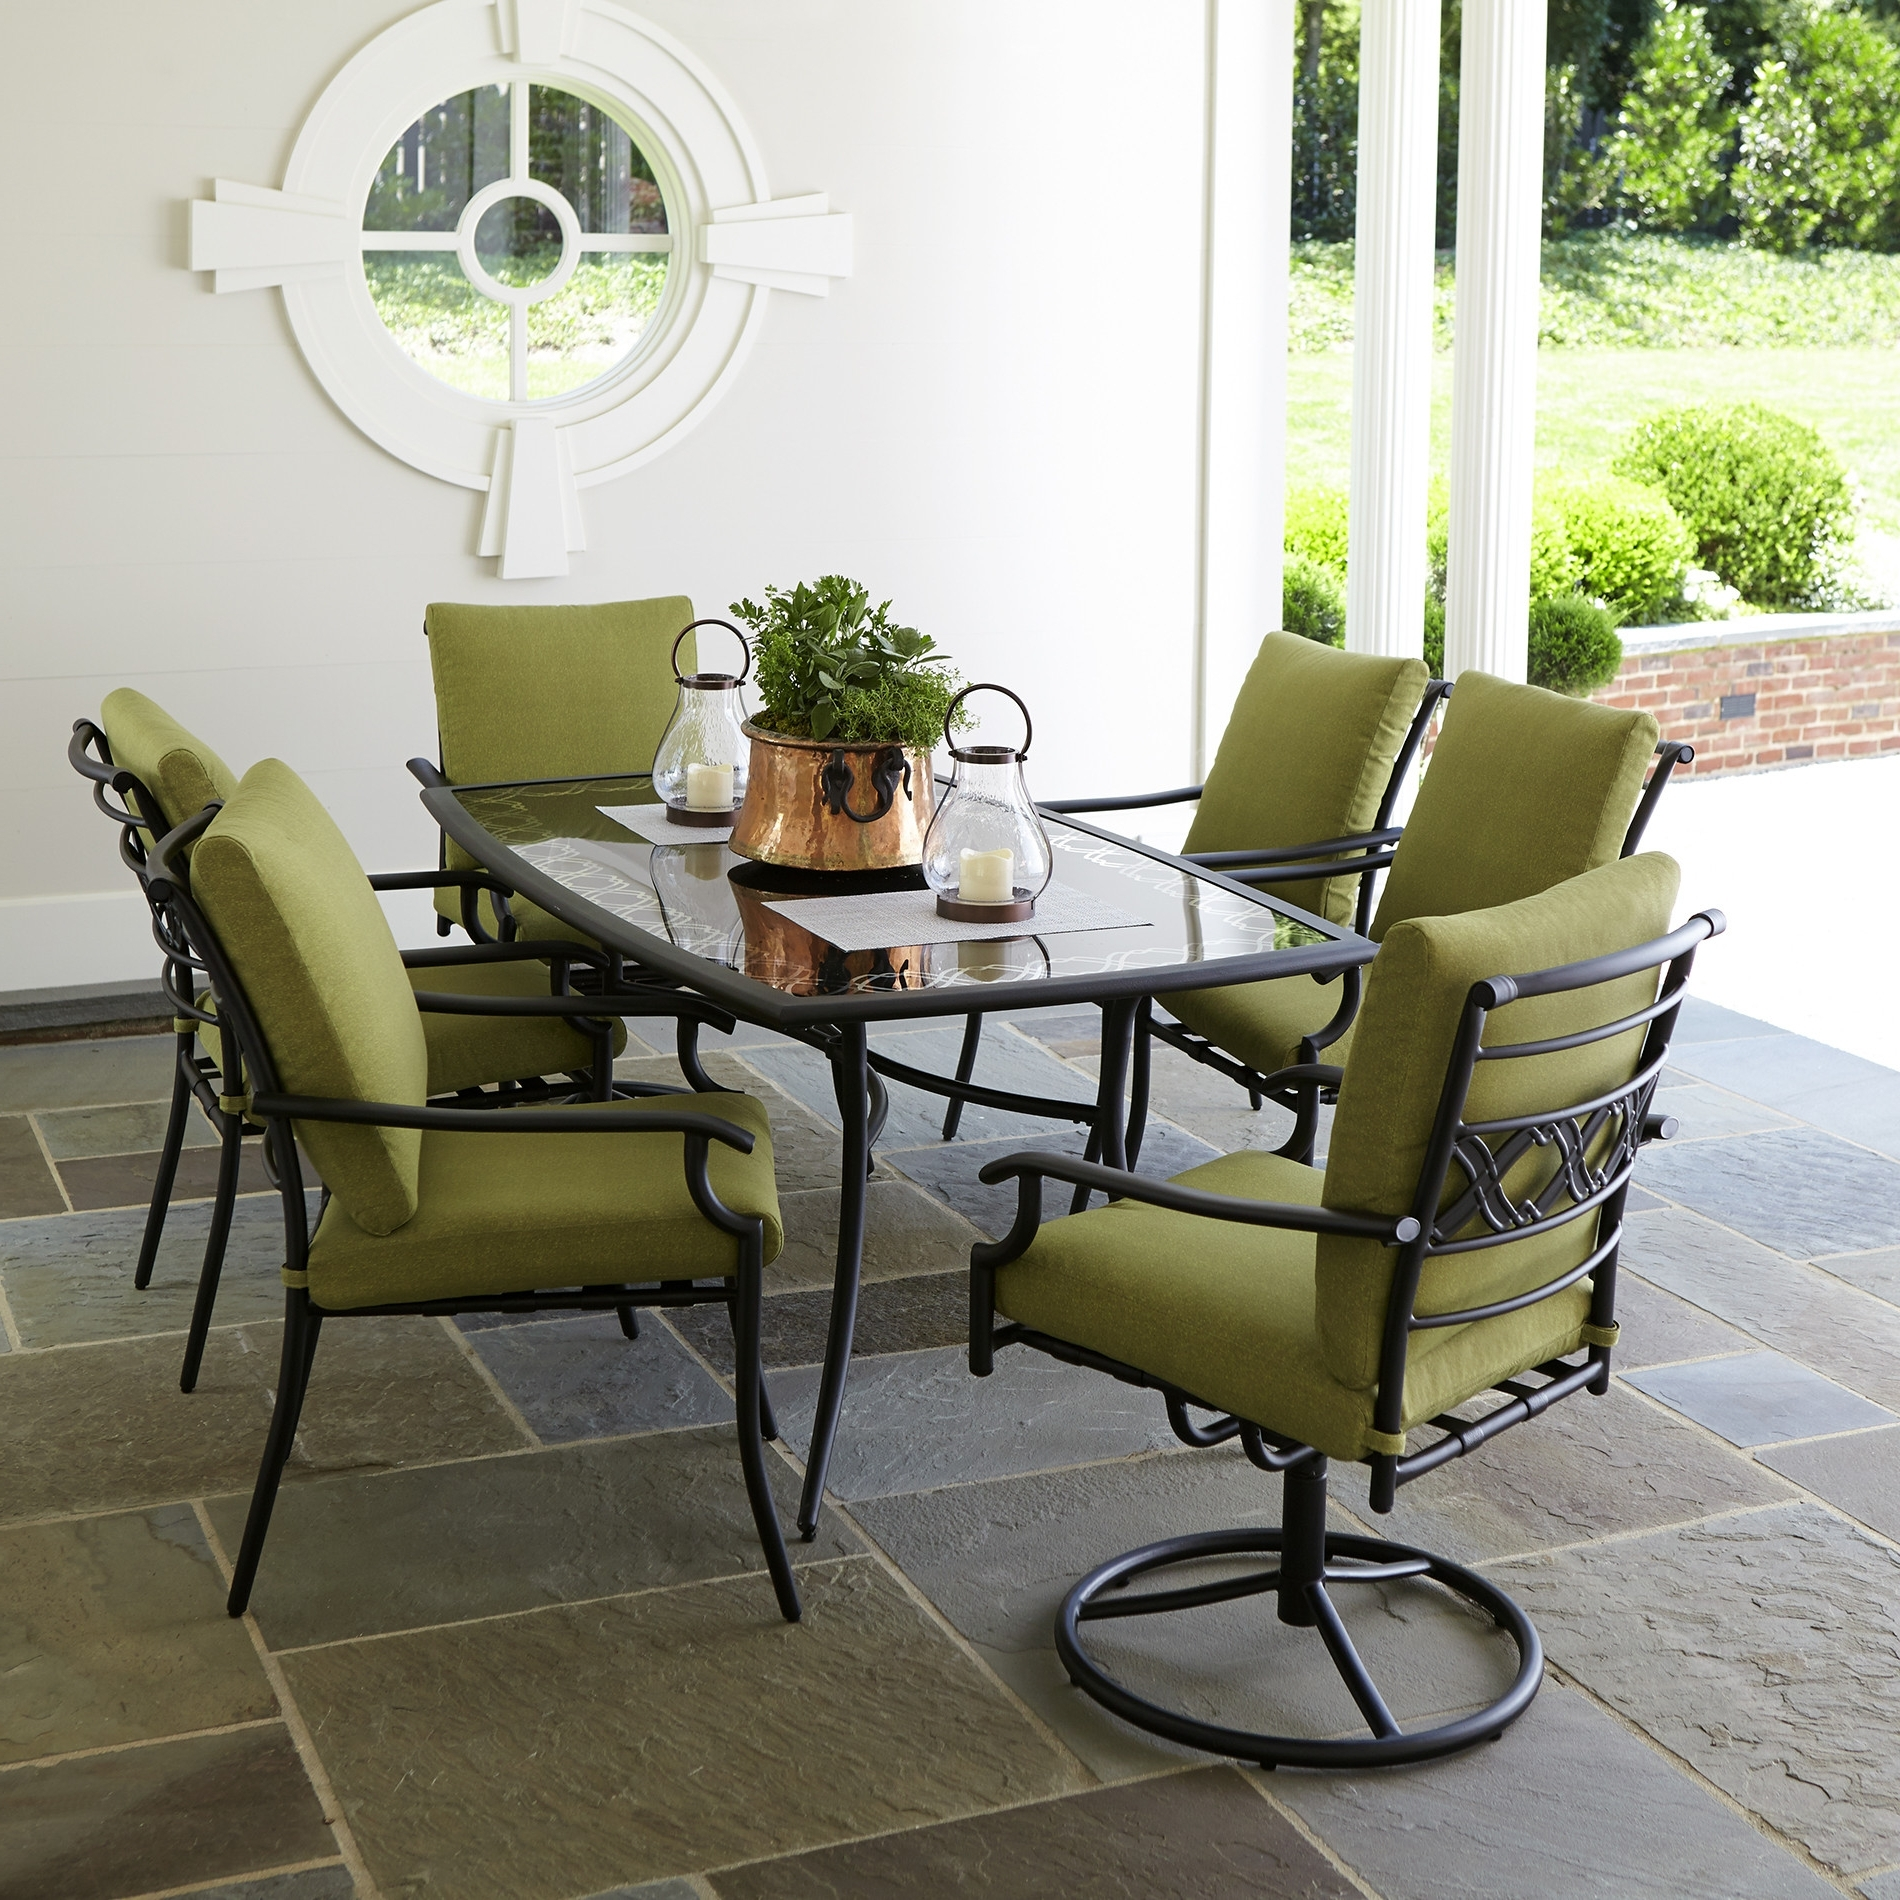 Patio Conversation Sets At Sears In 2017 30 Beautiful Conversation Sets Patio Furniture Idea Best Furniture (View 8 of 15)